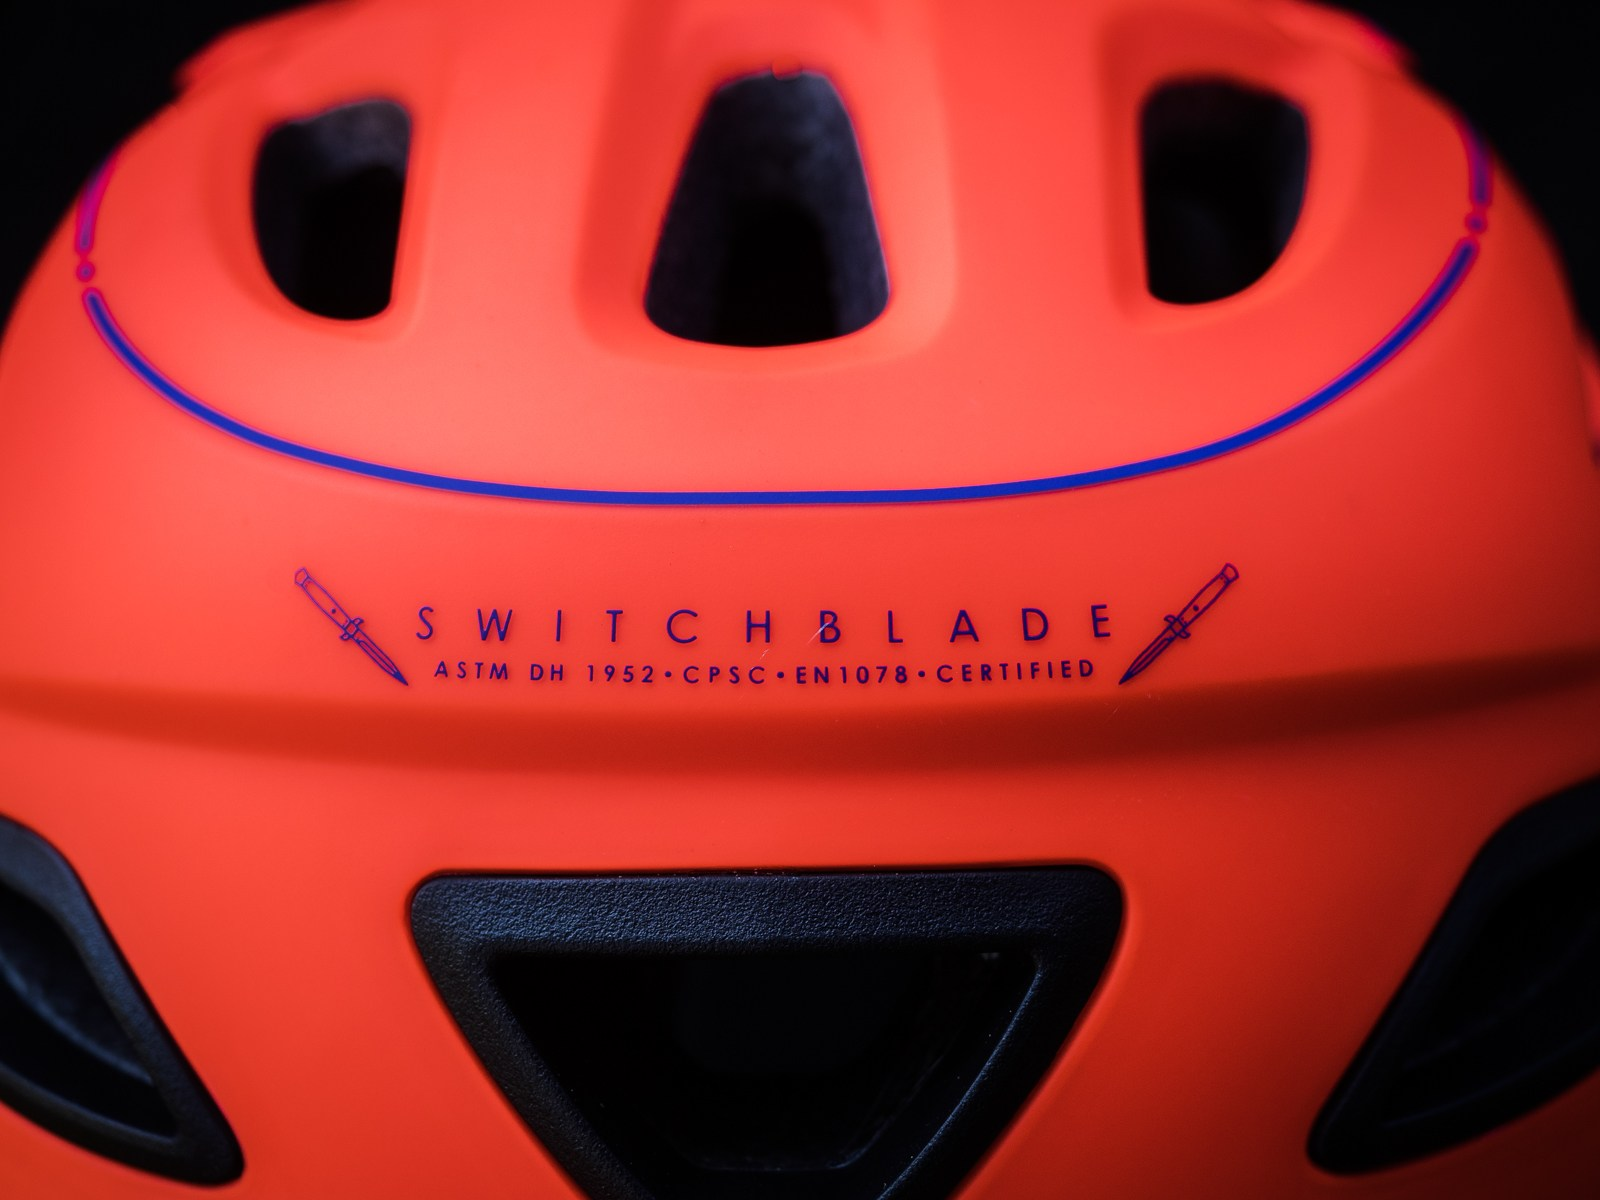 Giro Switchblade - Name plate